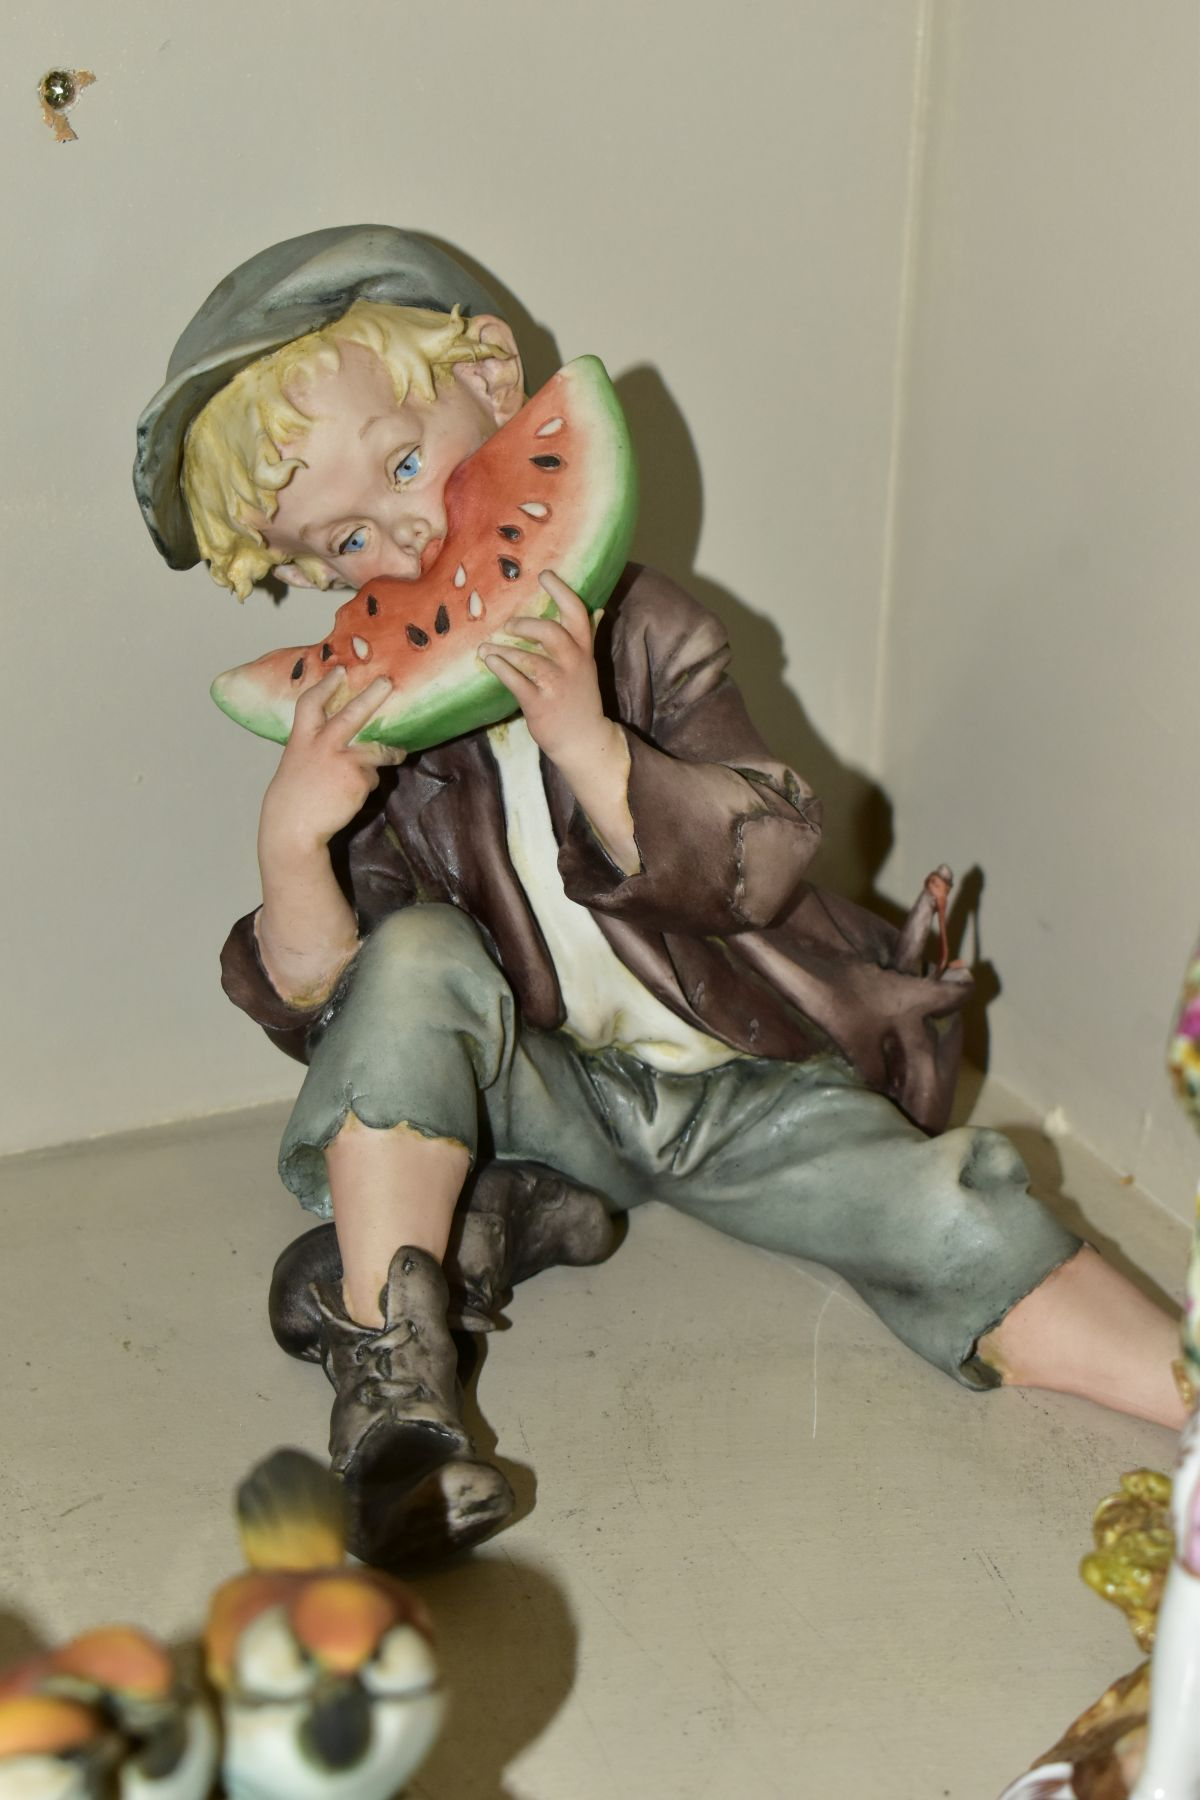 CAPODIMONTE to include a Tramp on a Bench Feeding a Squirrel, modelled by Bruno Merli, approximate - Image 5 of 7